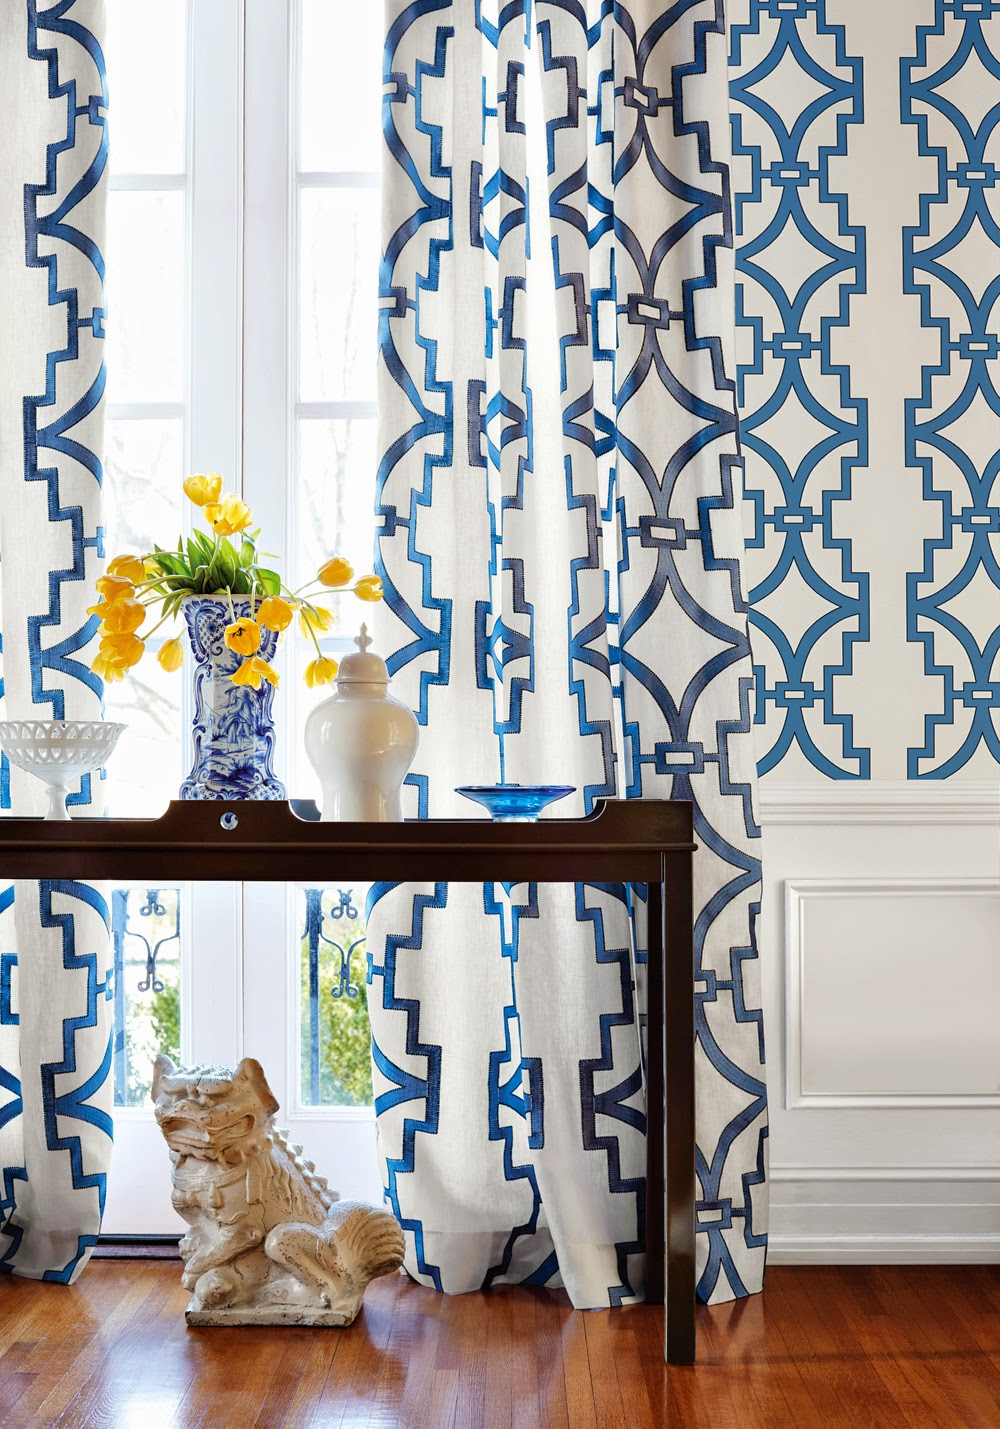 http://www.thibautdesign.com/collection/high_res.php?patternID=1532&productID=10753